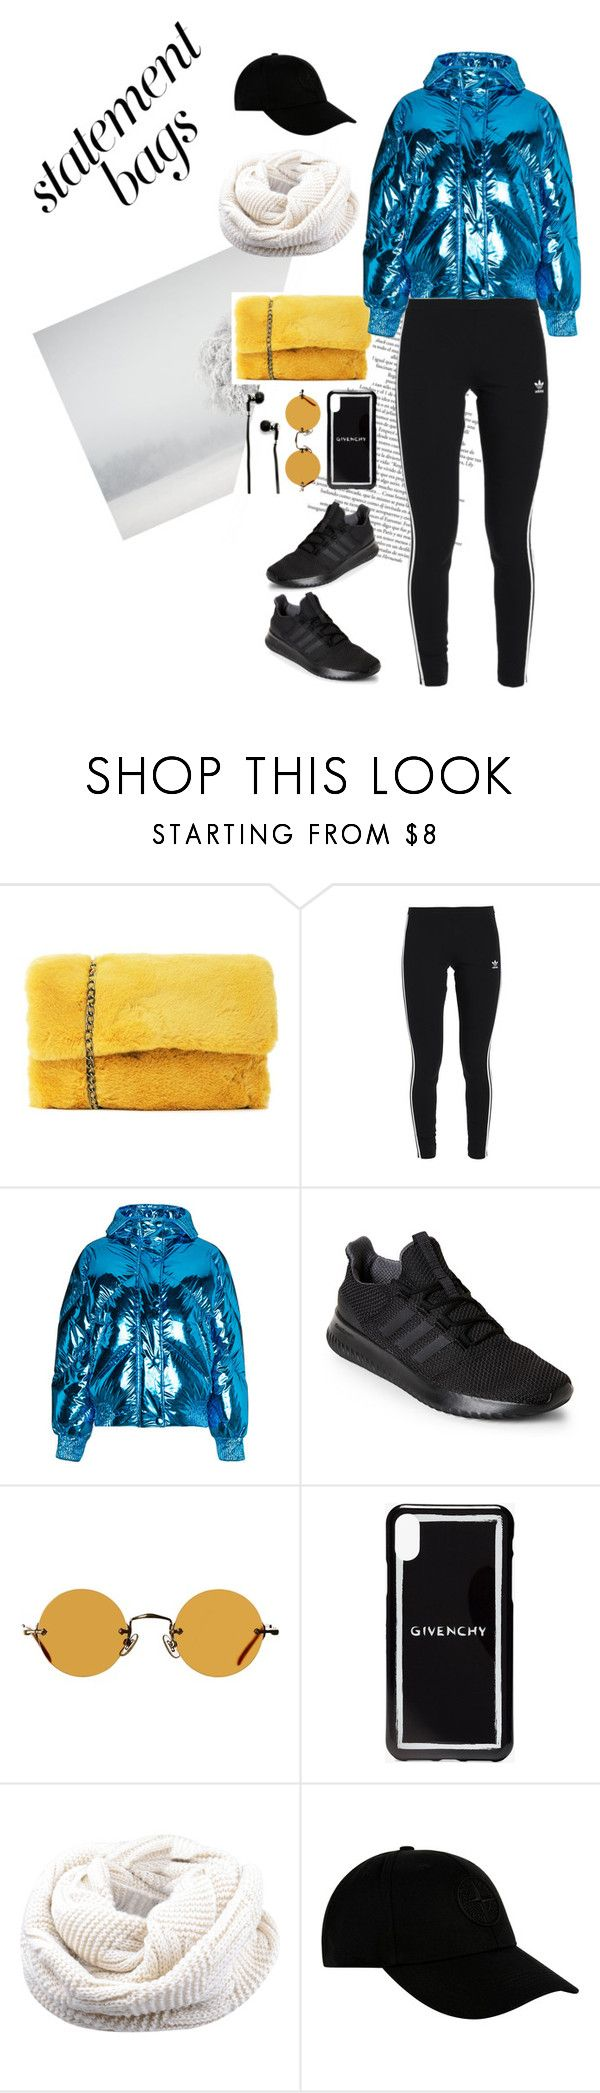 """""""Statement Bags Active"""" by neonlace ❤ liked on Polyvore featuring Nasty Gal, adidas Originals, Ienki Ienki, adidas, Hakusan, Givenchy, STONE ISLAND, Master & Dynamic and statementbags"""